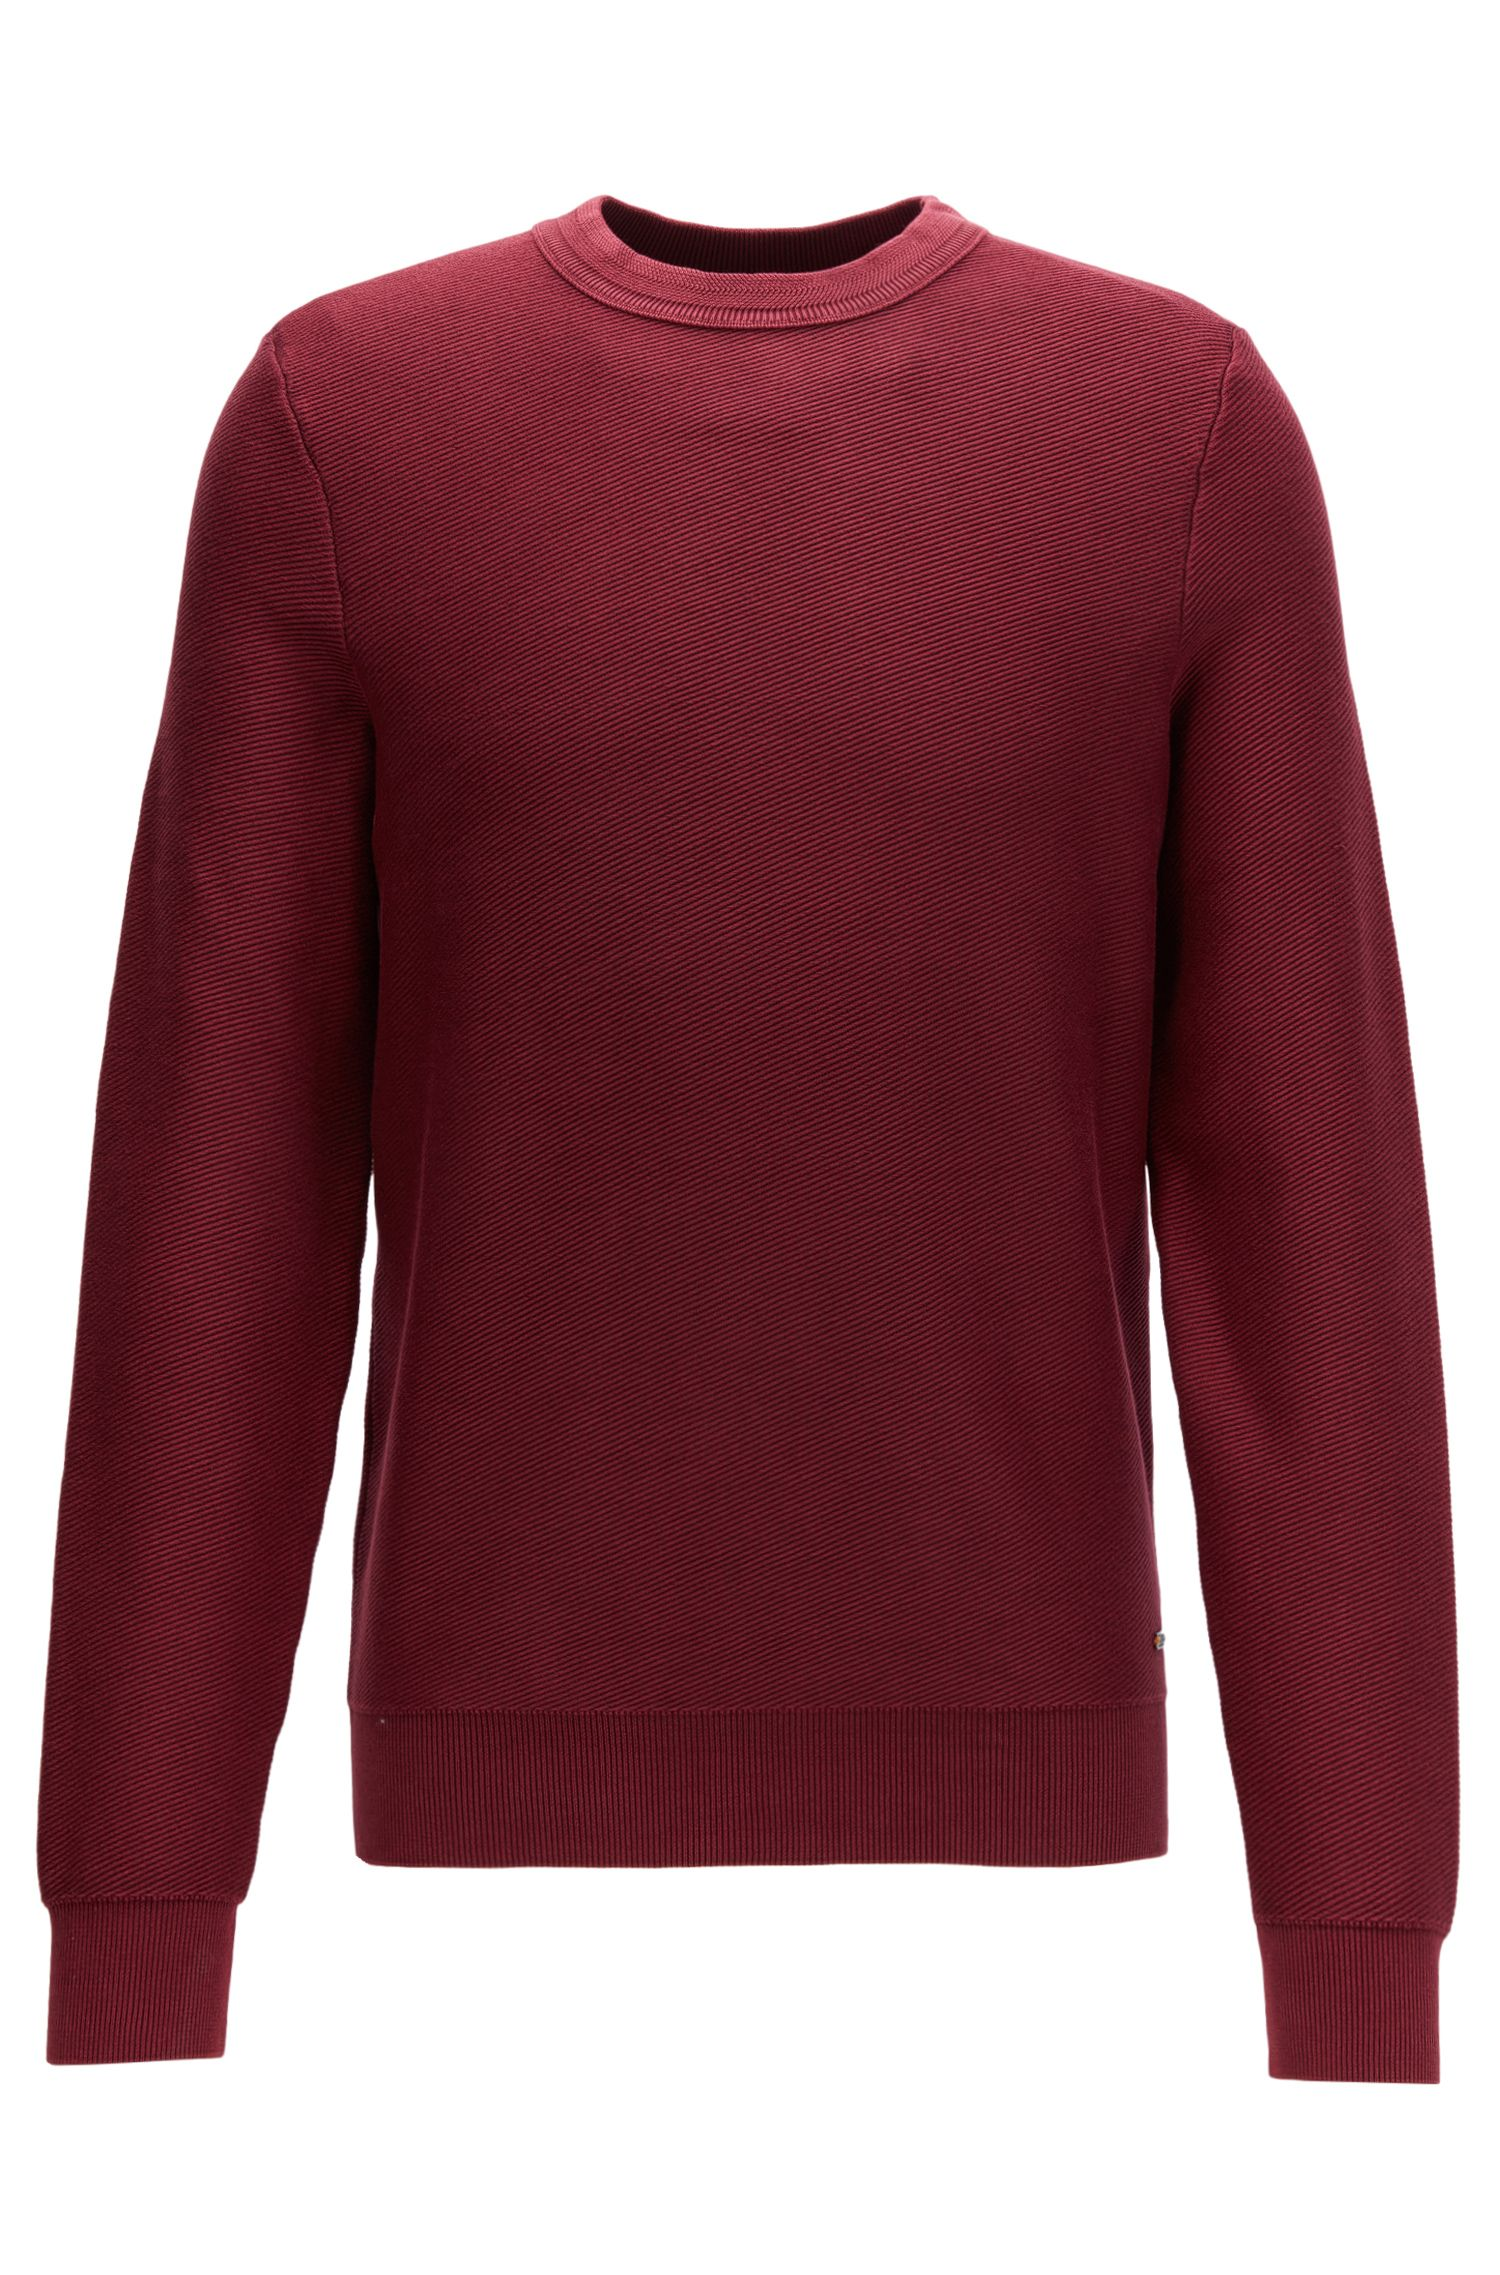 Crew-neck sweater in stonewashed cotton